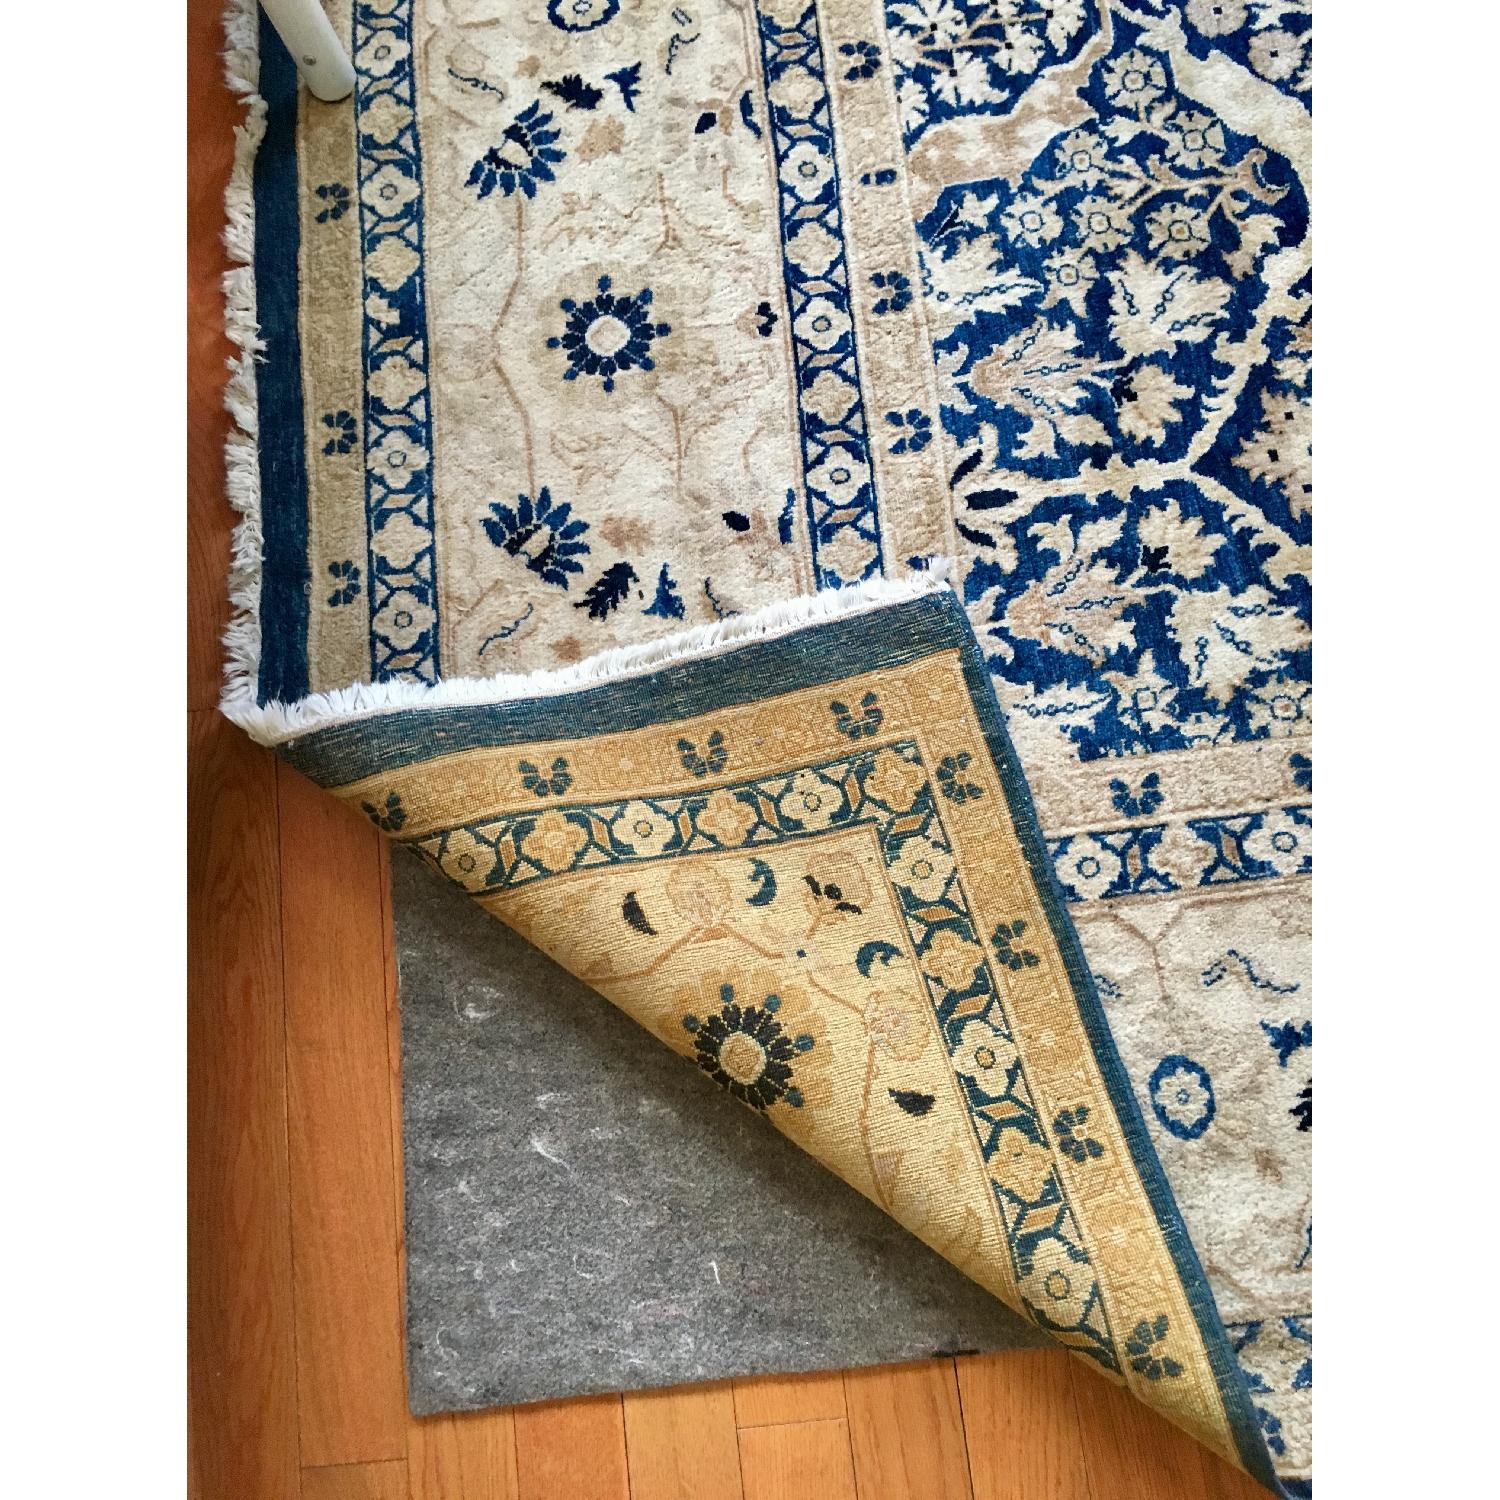 ABC Carpet and Home Wool Area Rug - image-3